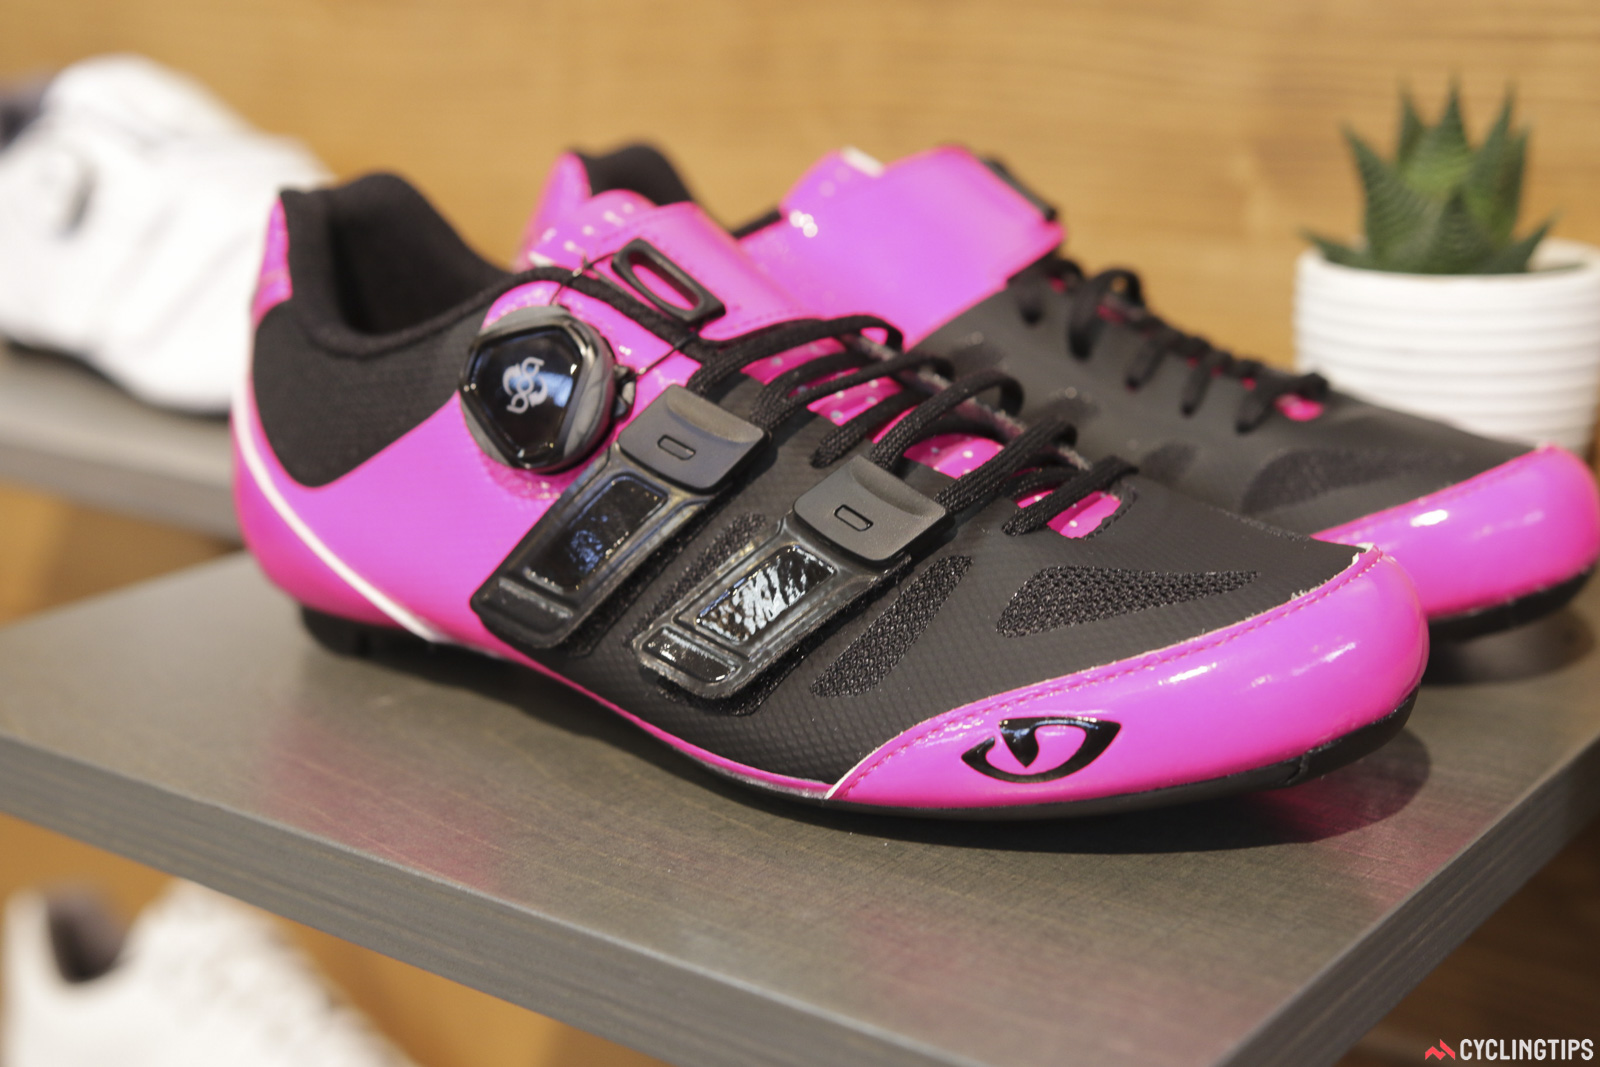 The new Giro Raes TechLace offers laces, BOA and Velcro all-in-one. So much choice. Photo: David Rome.